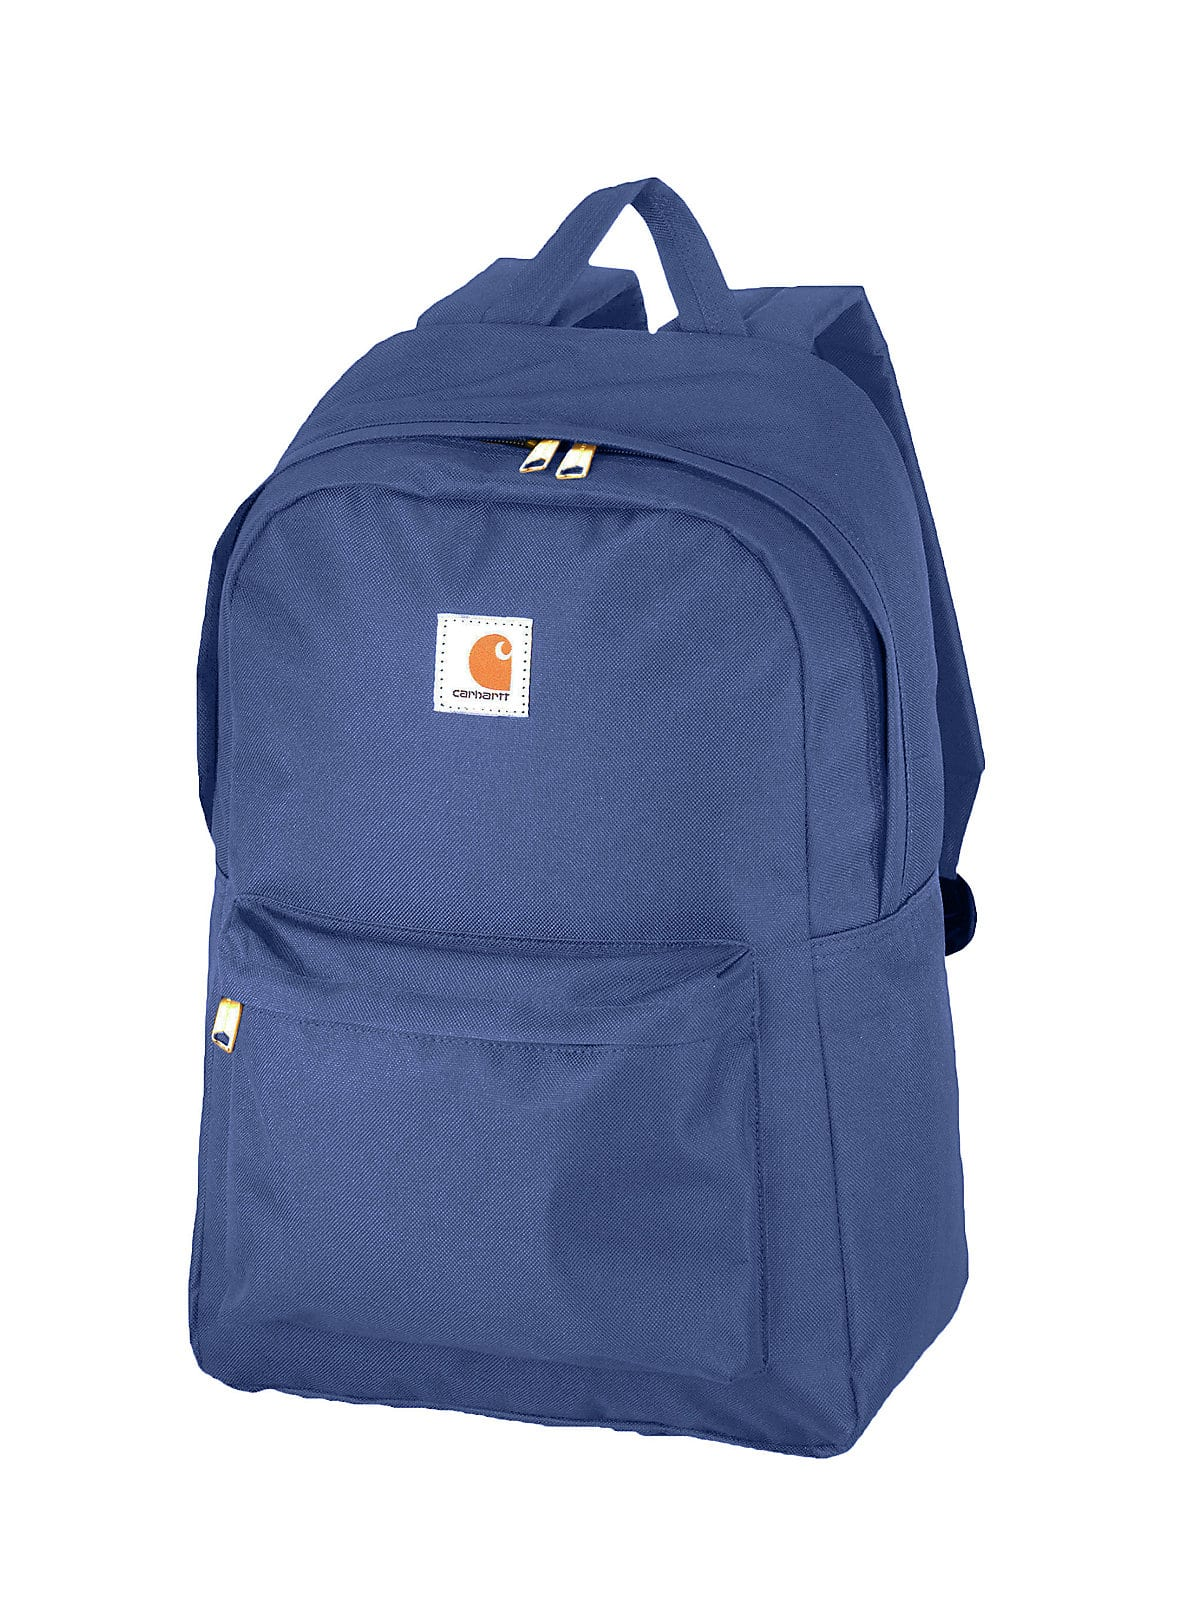 4033adccb630 Unisex Trade Backpack 100301B